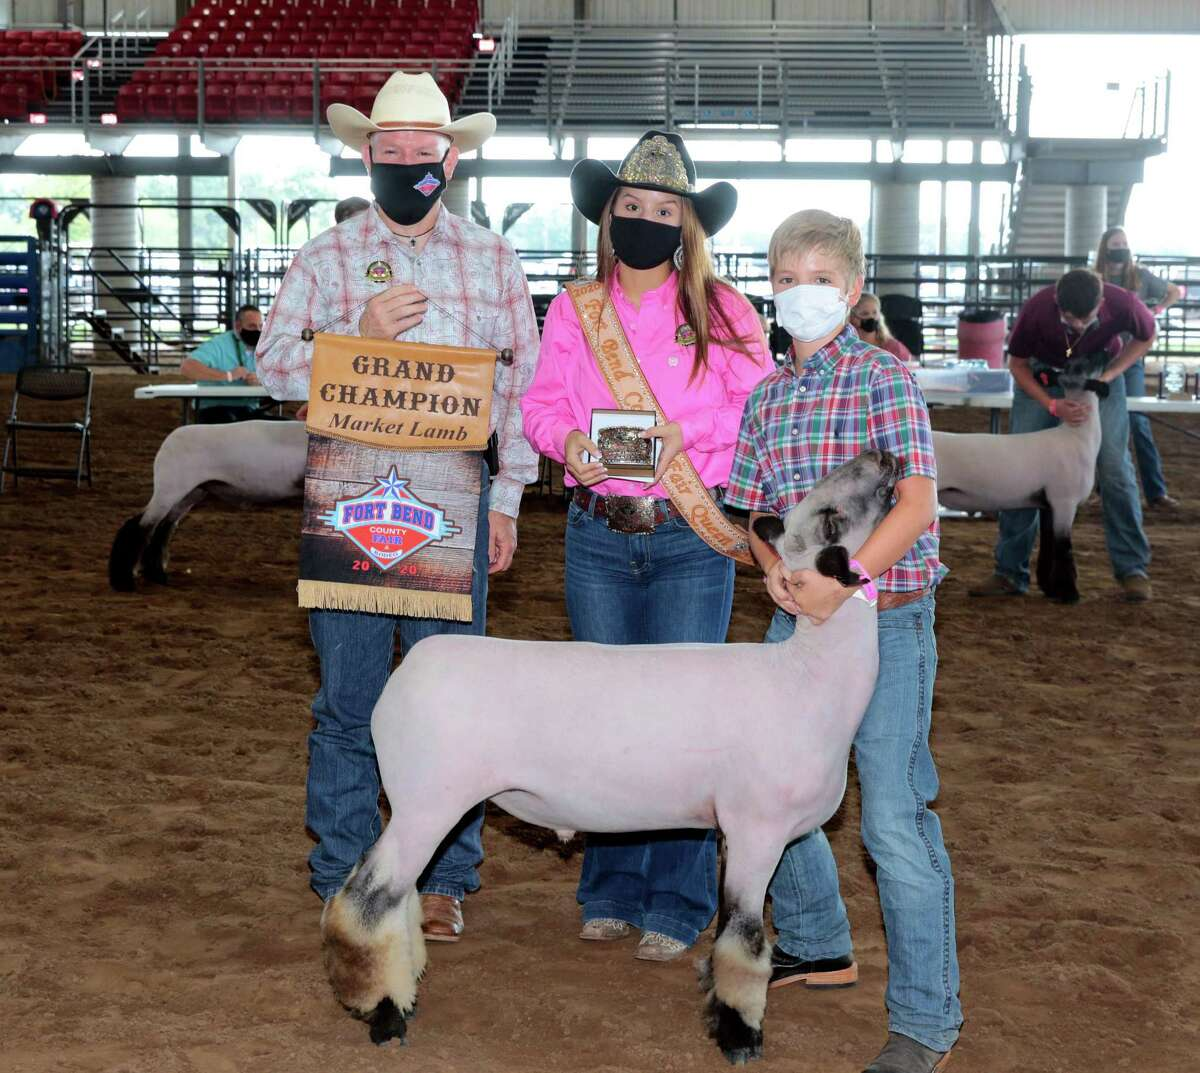 Fort Bend County Fair and Rodeo President Sean Gutierrez (left), 2020 Fort Bend County Fair Queen Caroline O'Driscoll presenting Grand Champion Lamb buckle and banner to Zane Atkinson.